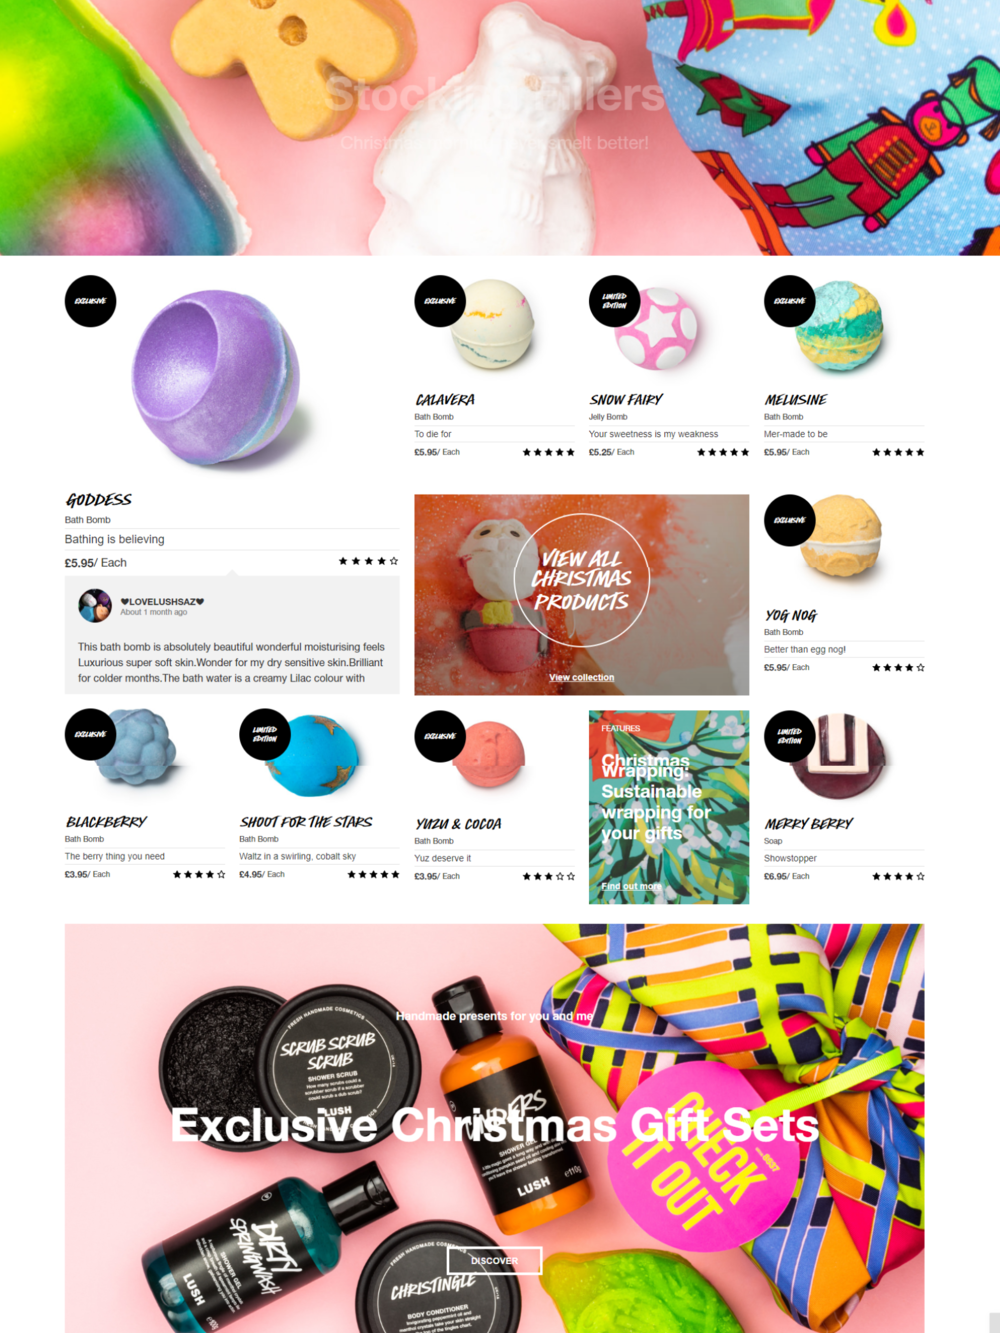 screenshot-uk.lush.com-2018.11.28-13-34-05.png